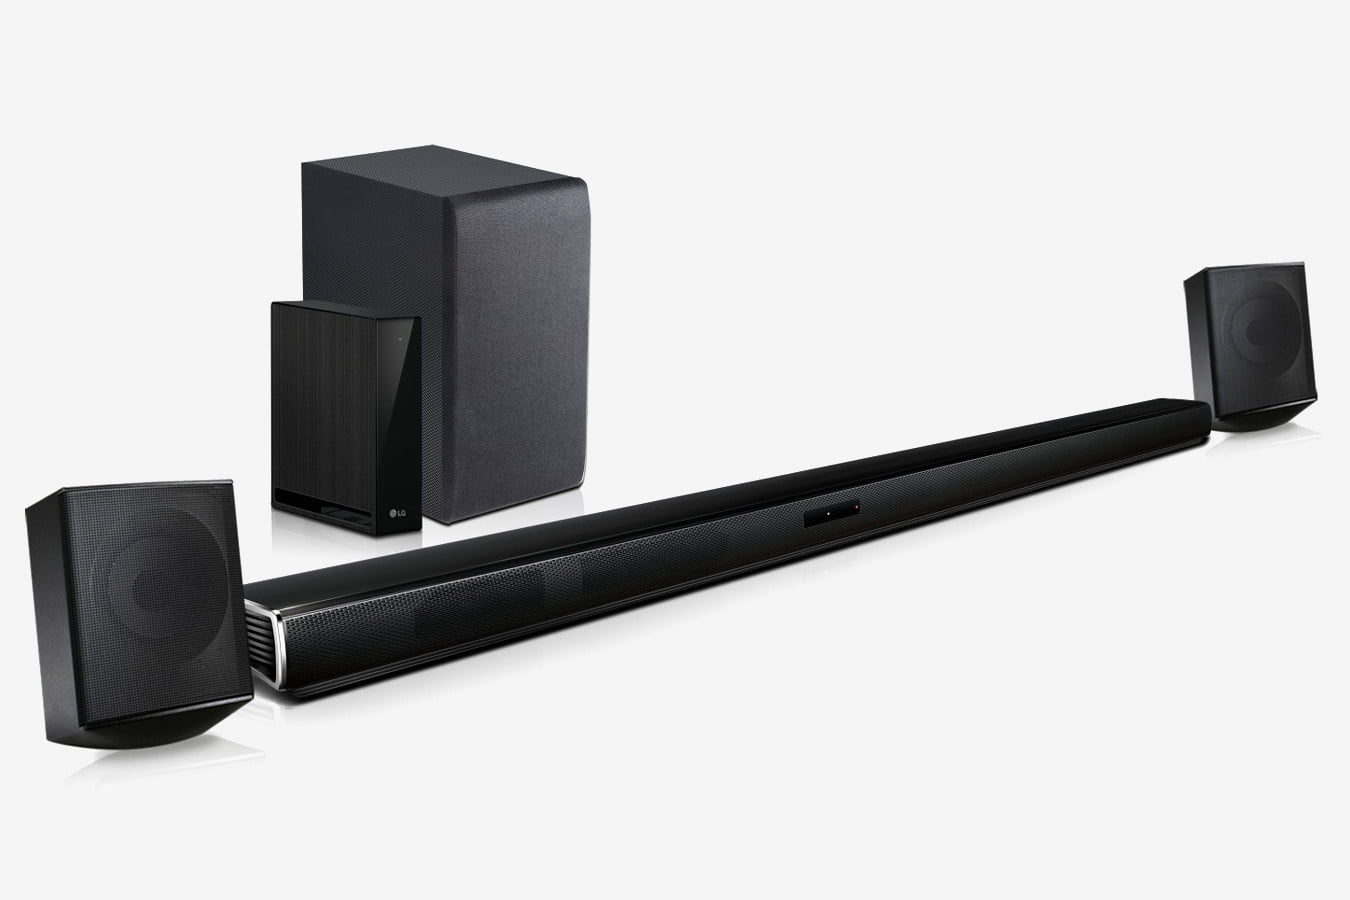 LG 4.1 channel soundbar system